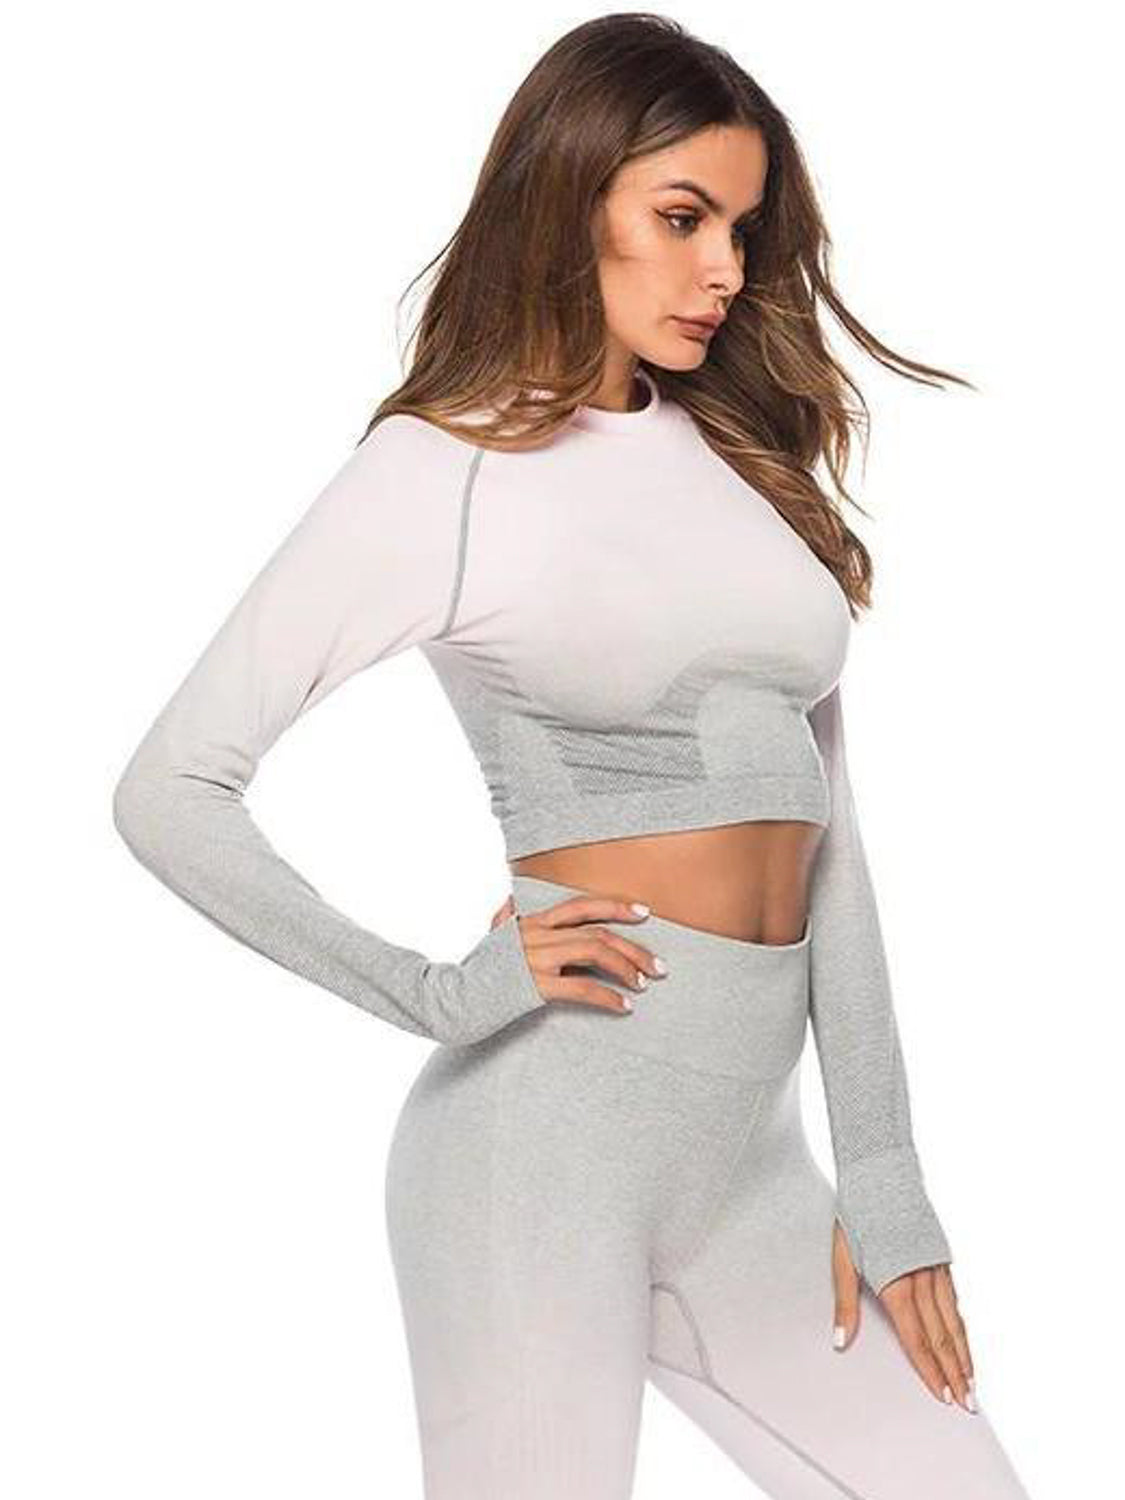 MOVI Sculpt+ Ombre Sleeved Crop - Light Pink/Grey